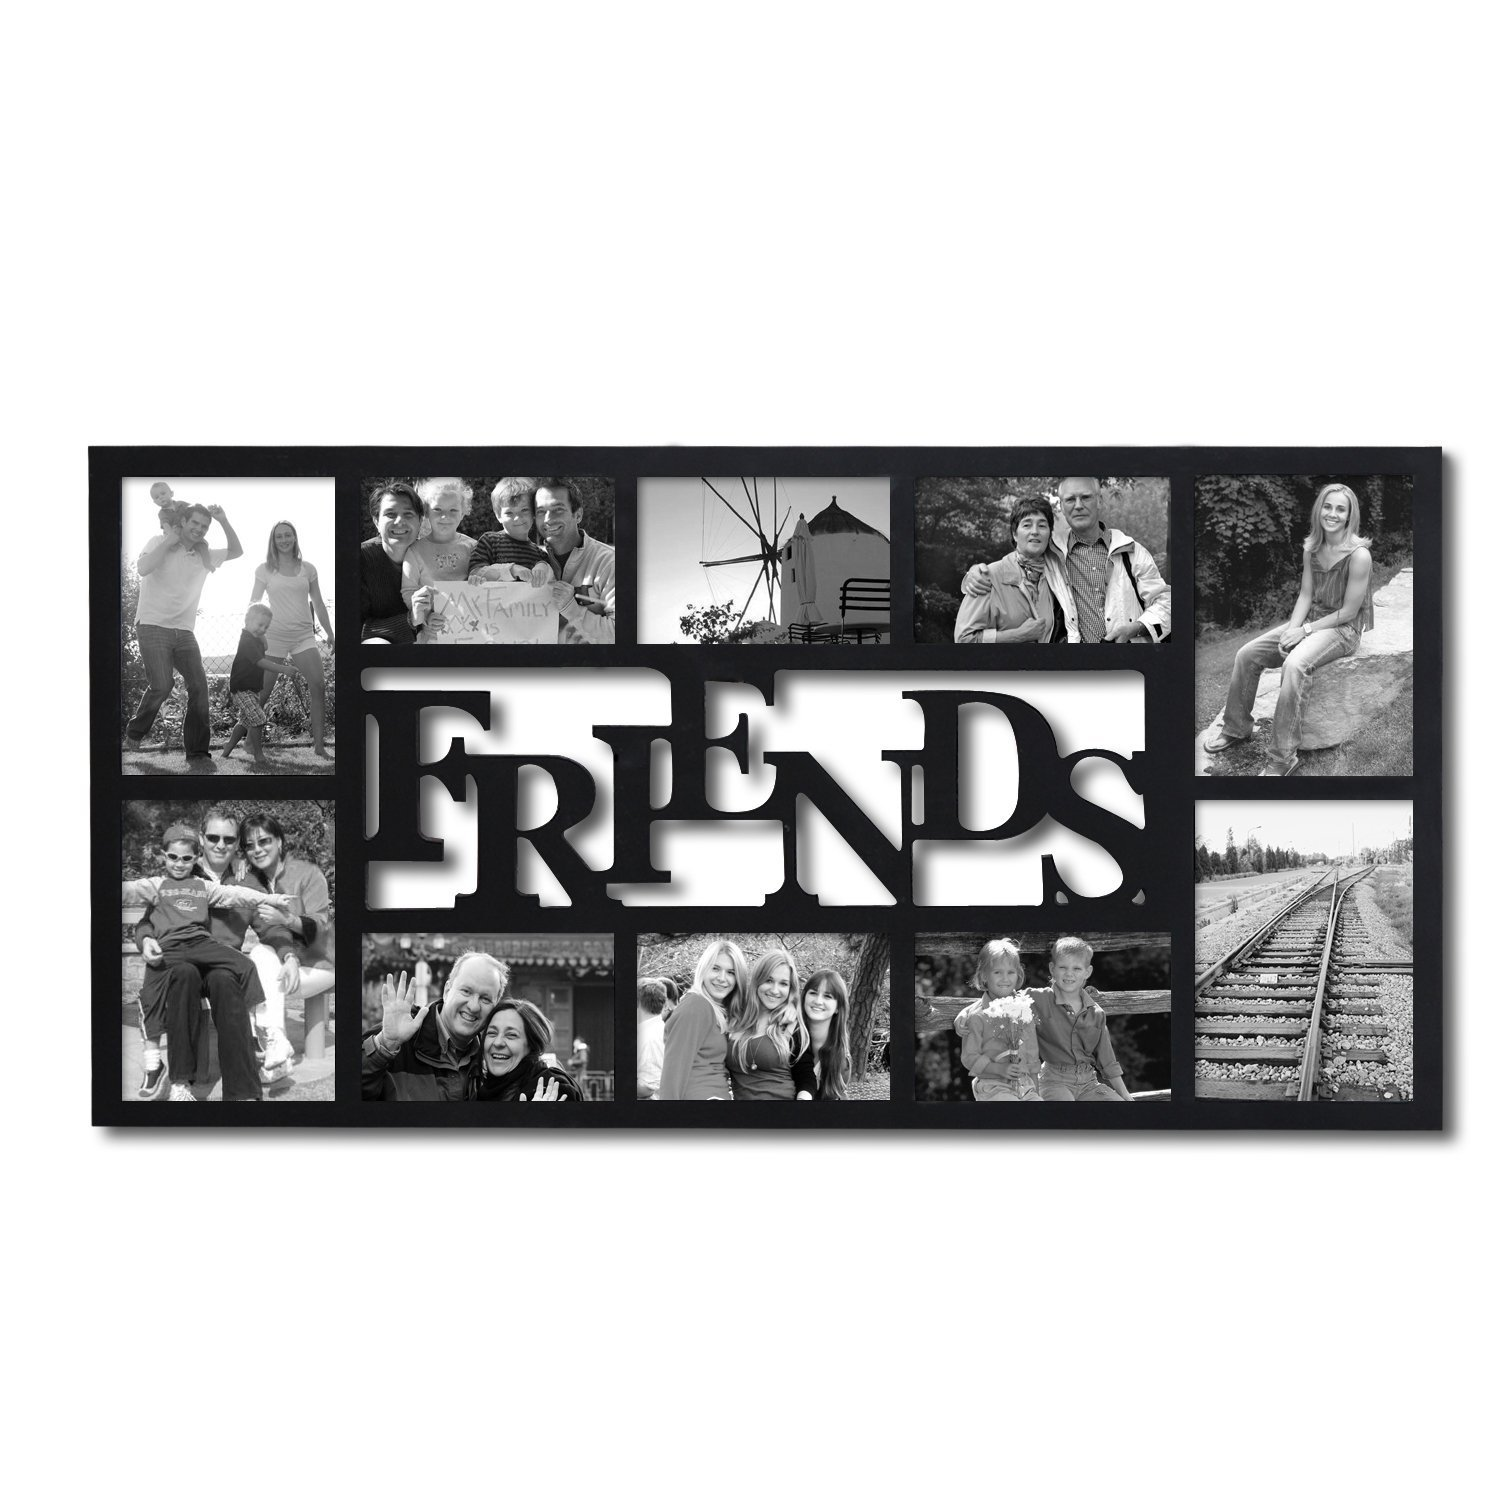 "PF0396 10-Opening Decorative Wood ""Friends"" Collage Wall Hanging Picture Photo Frame, 4x6 Inches and 5x7 Inches, Black, Black matte finish By Adeco"